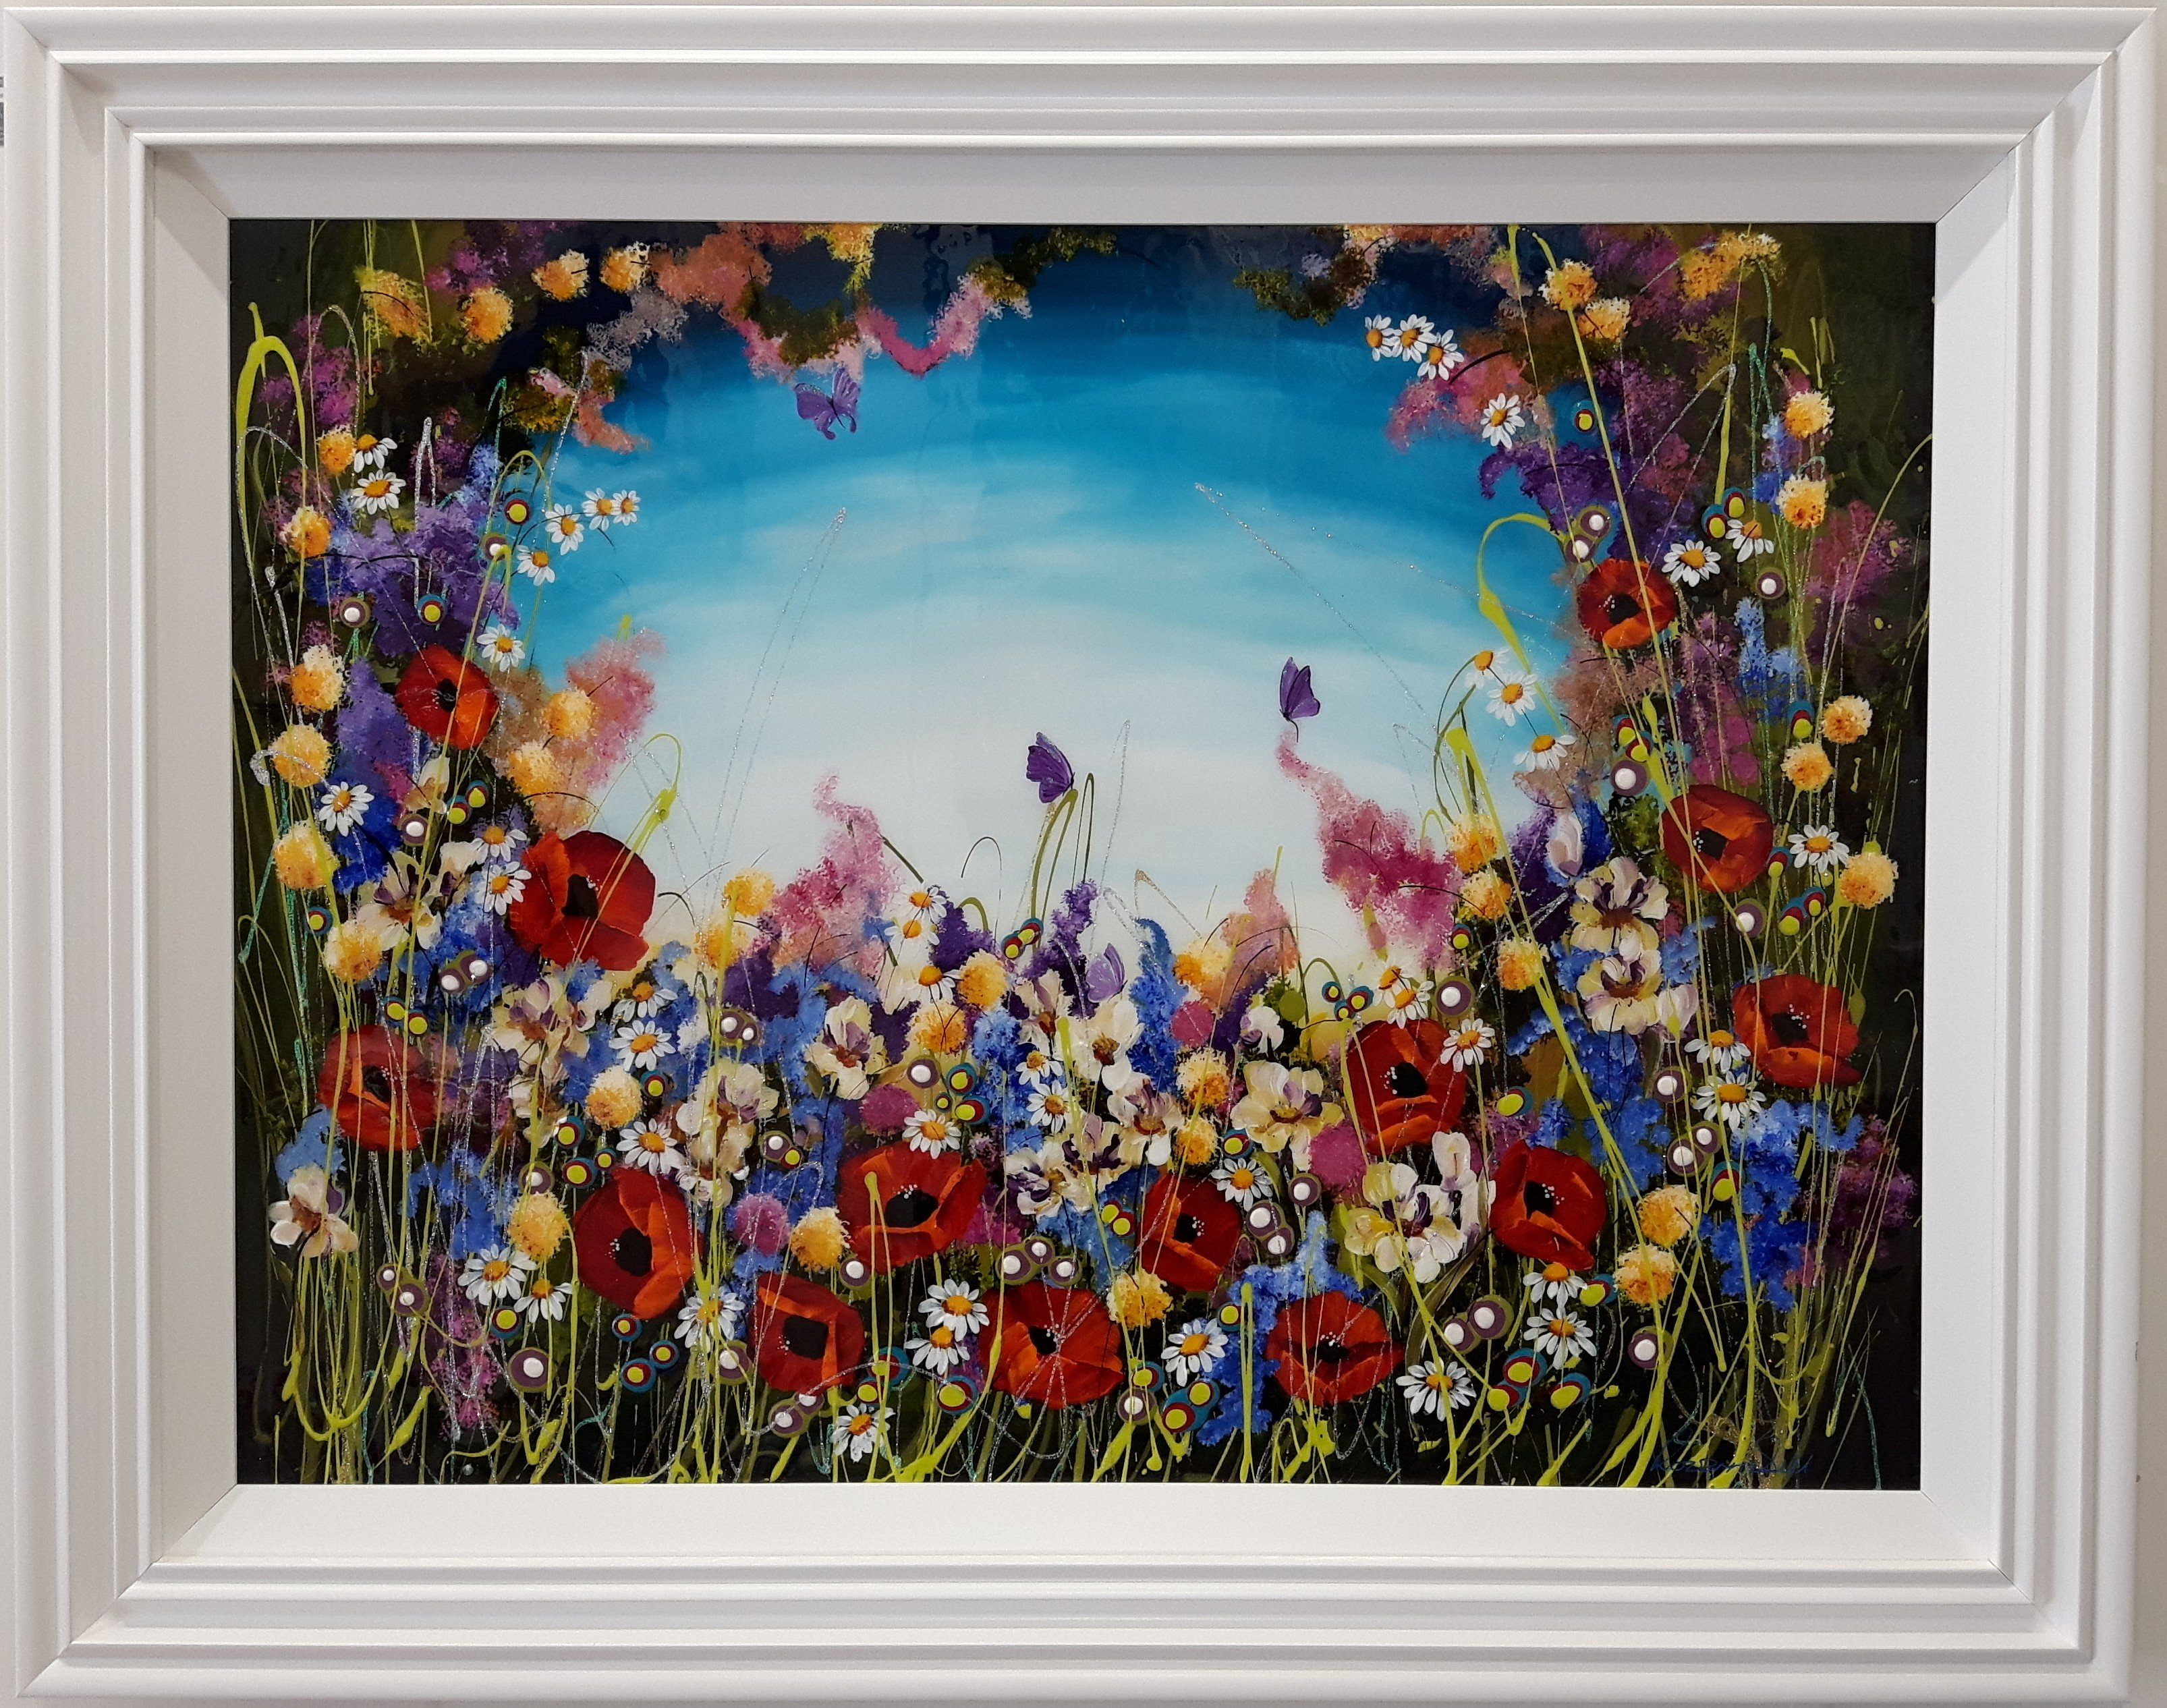 Floral Burst II by Roz Bell